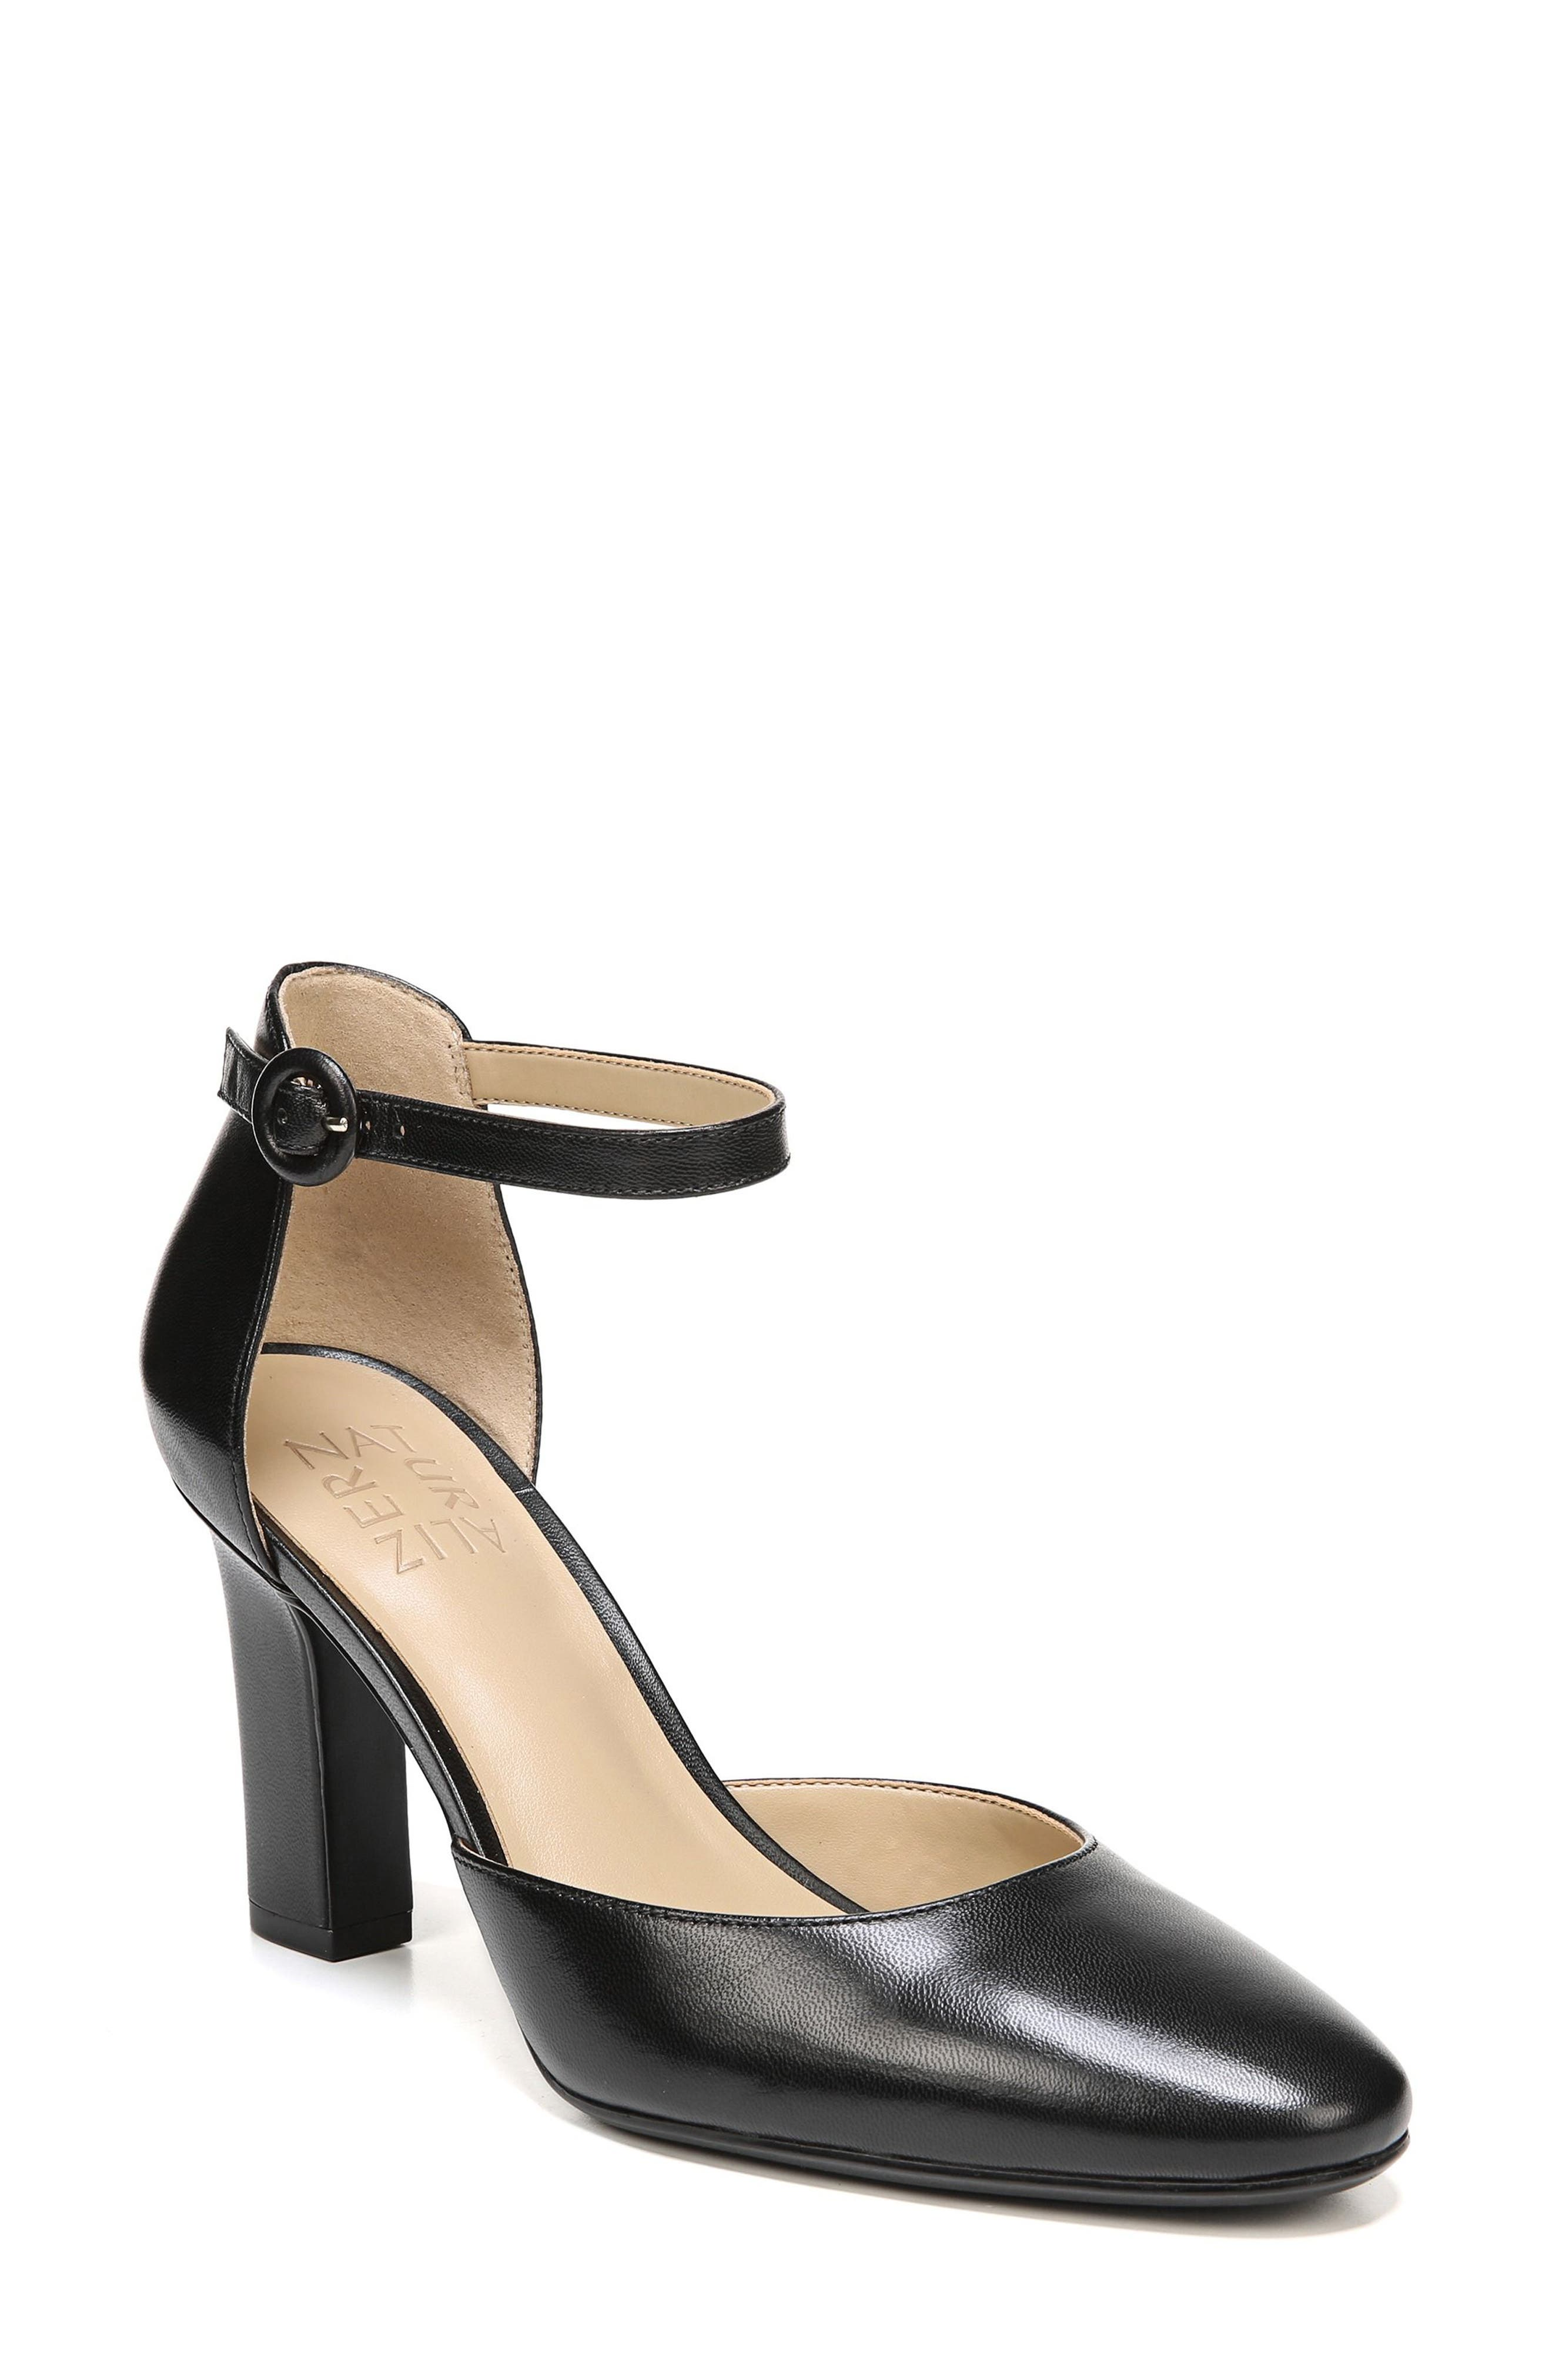 Gianna Ankle Strap Pump,                             Main thumbnail 1, color,                             BLACK LEATHER